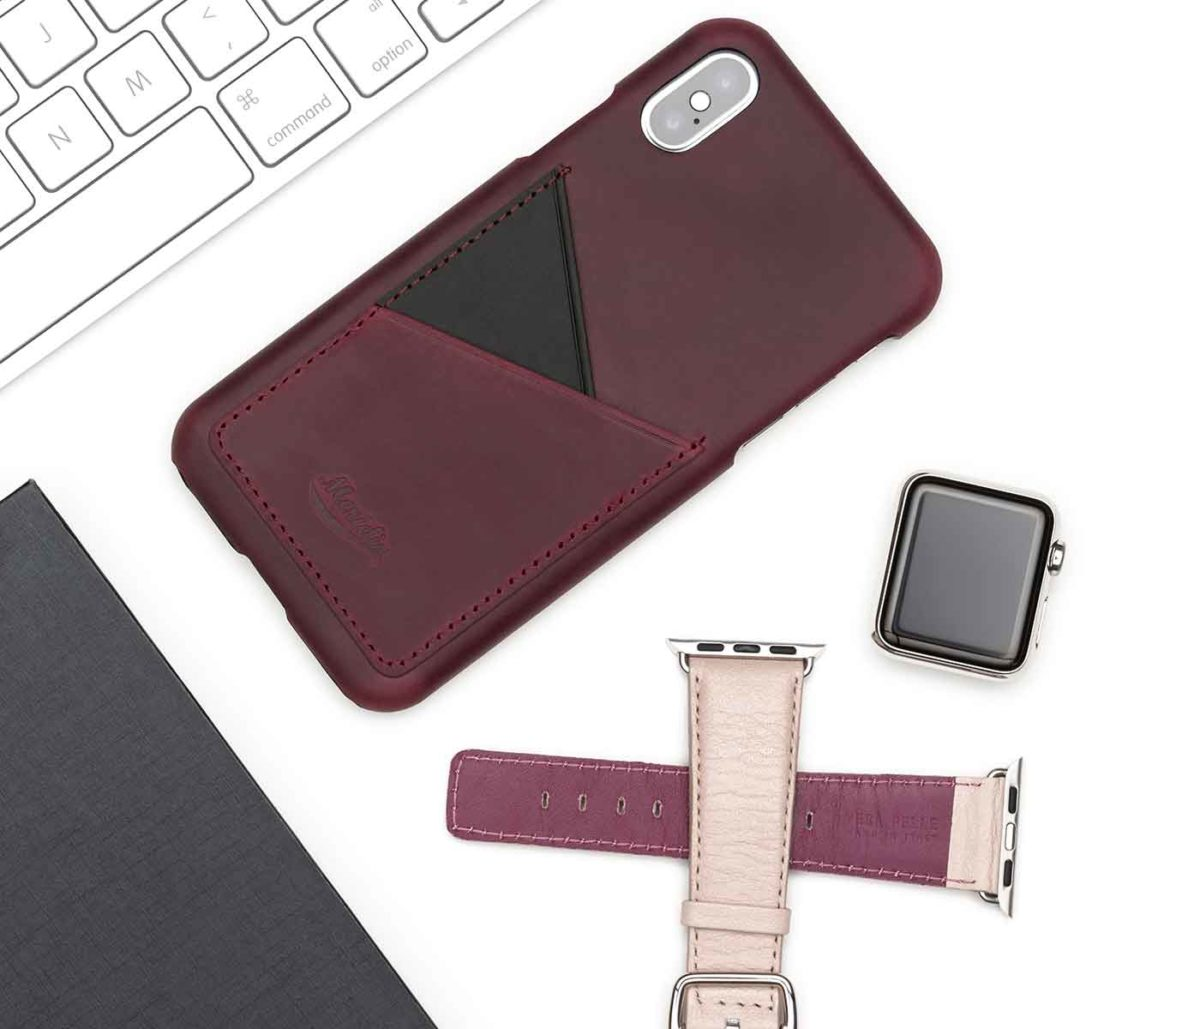 Grapevine-Iphone-leatehr-case-close-to-an-Apple-watch-powder-band-bs